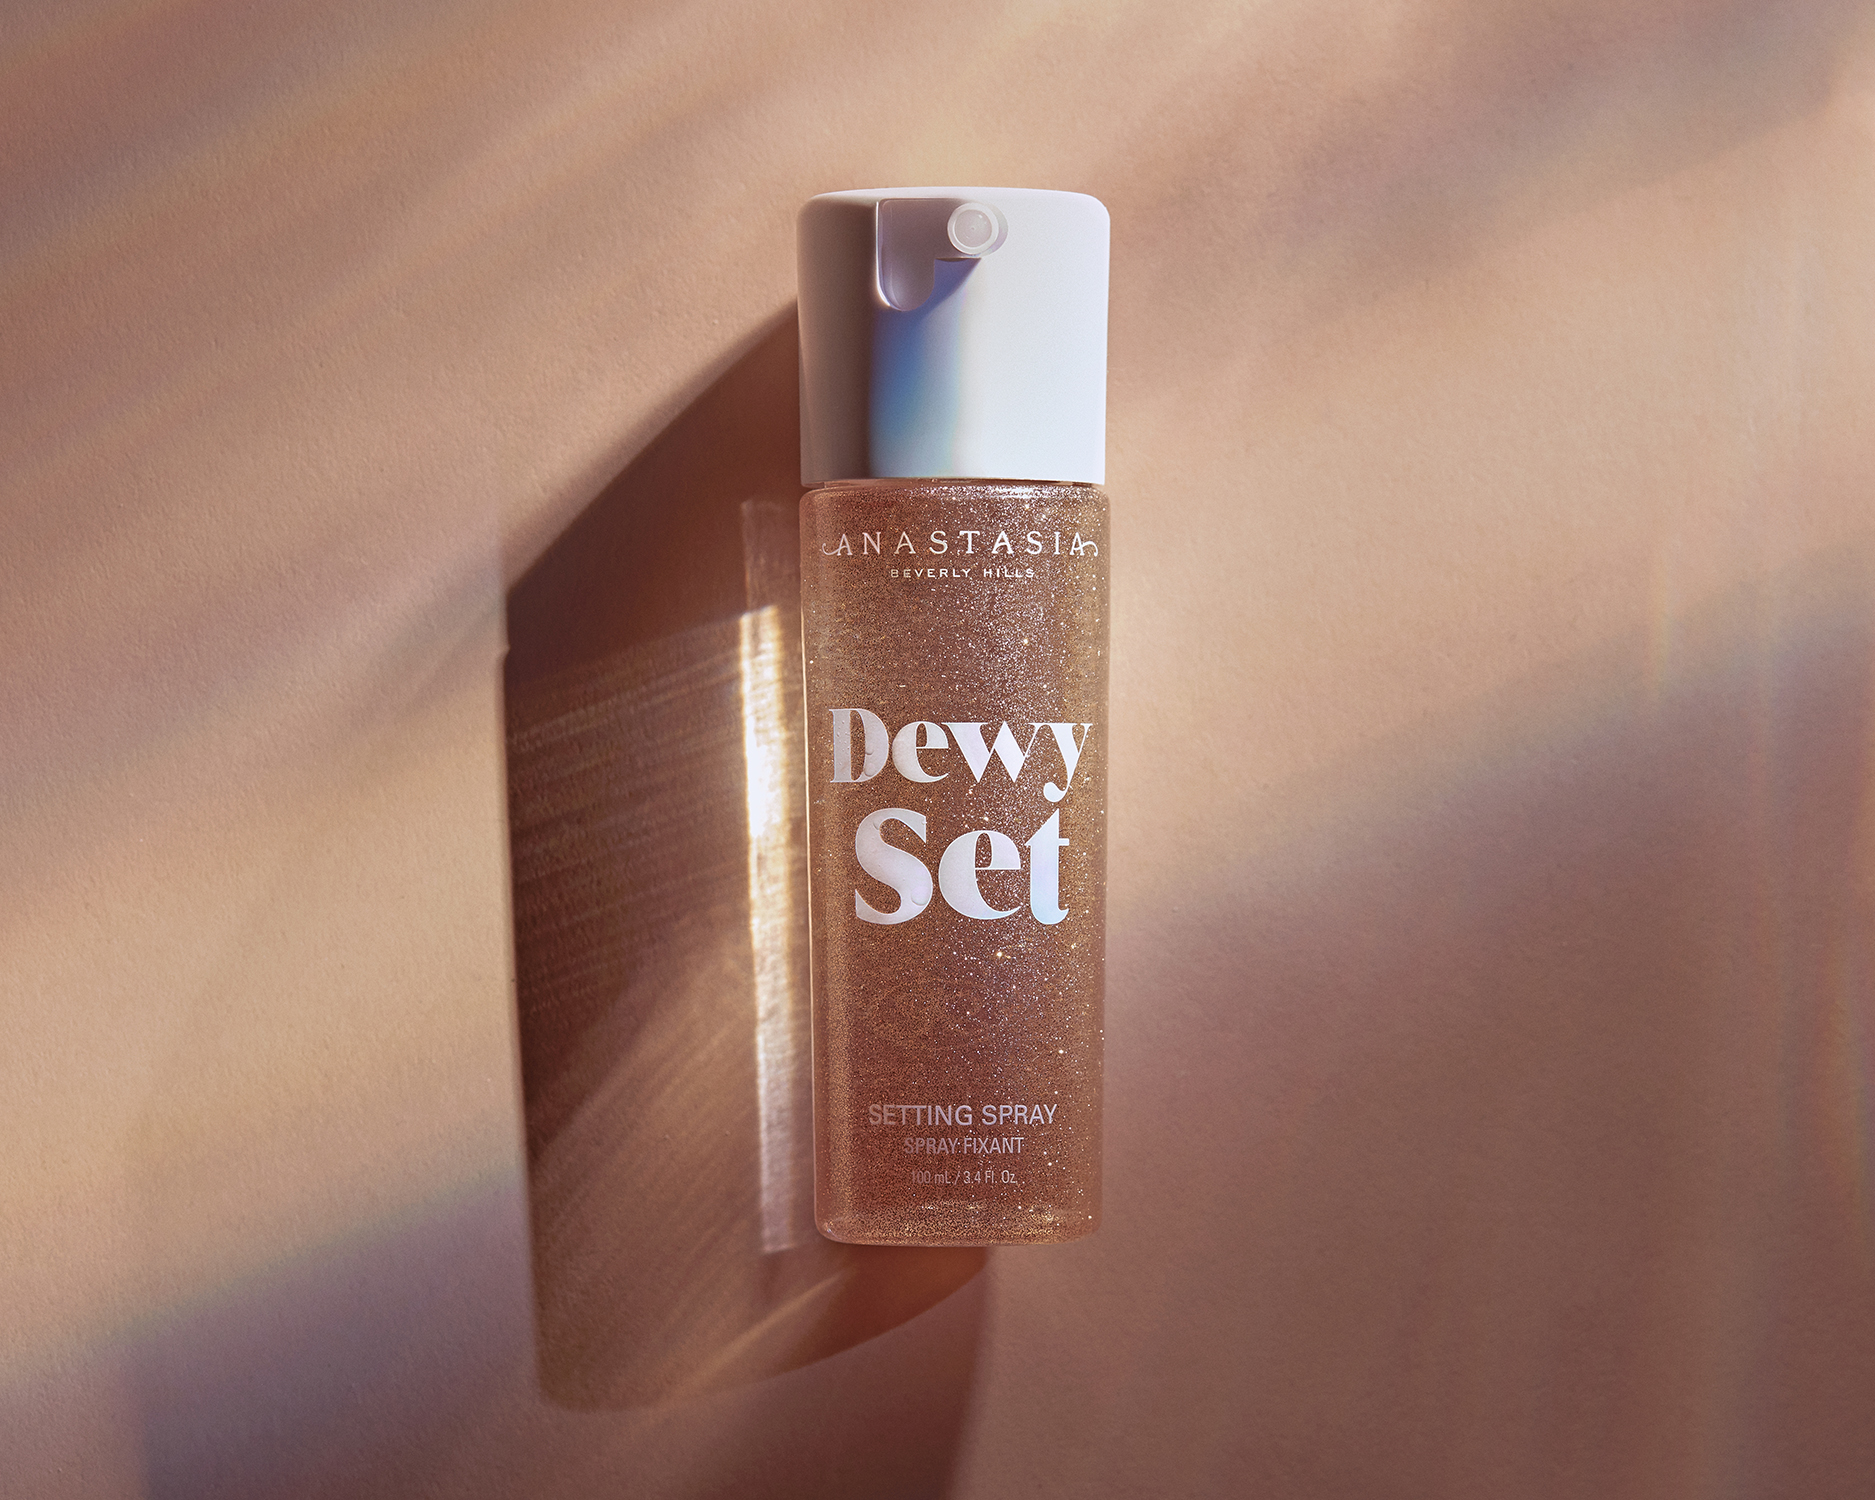 Introducing Dewy Set - Setting Spray achieve the ultimate dewy glow